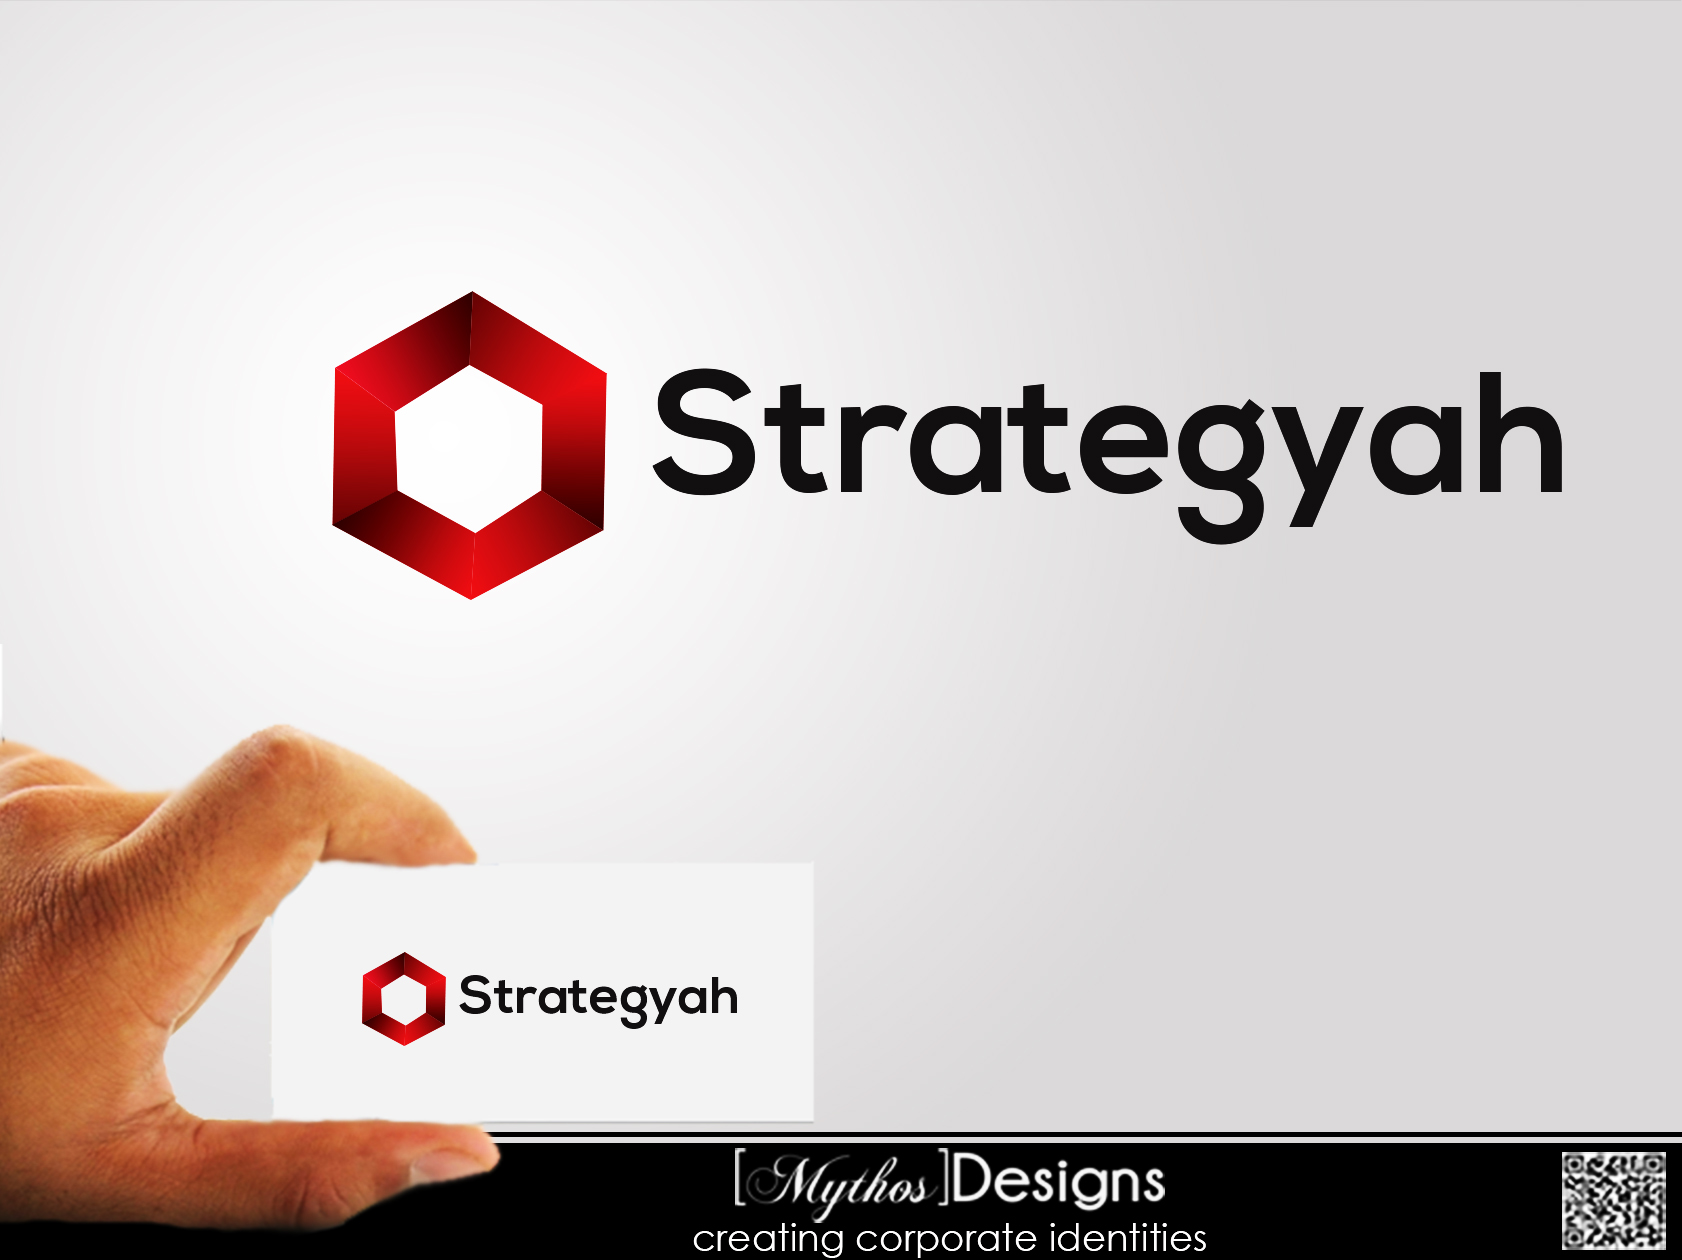 Logo Design by Mythos Designs - Entry No. 6 in the Logo Design Contest Creative Logo Design for Strategyah.